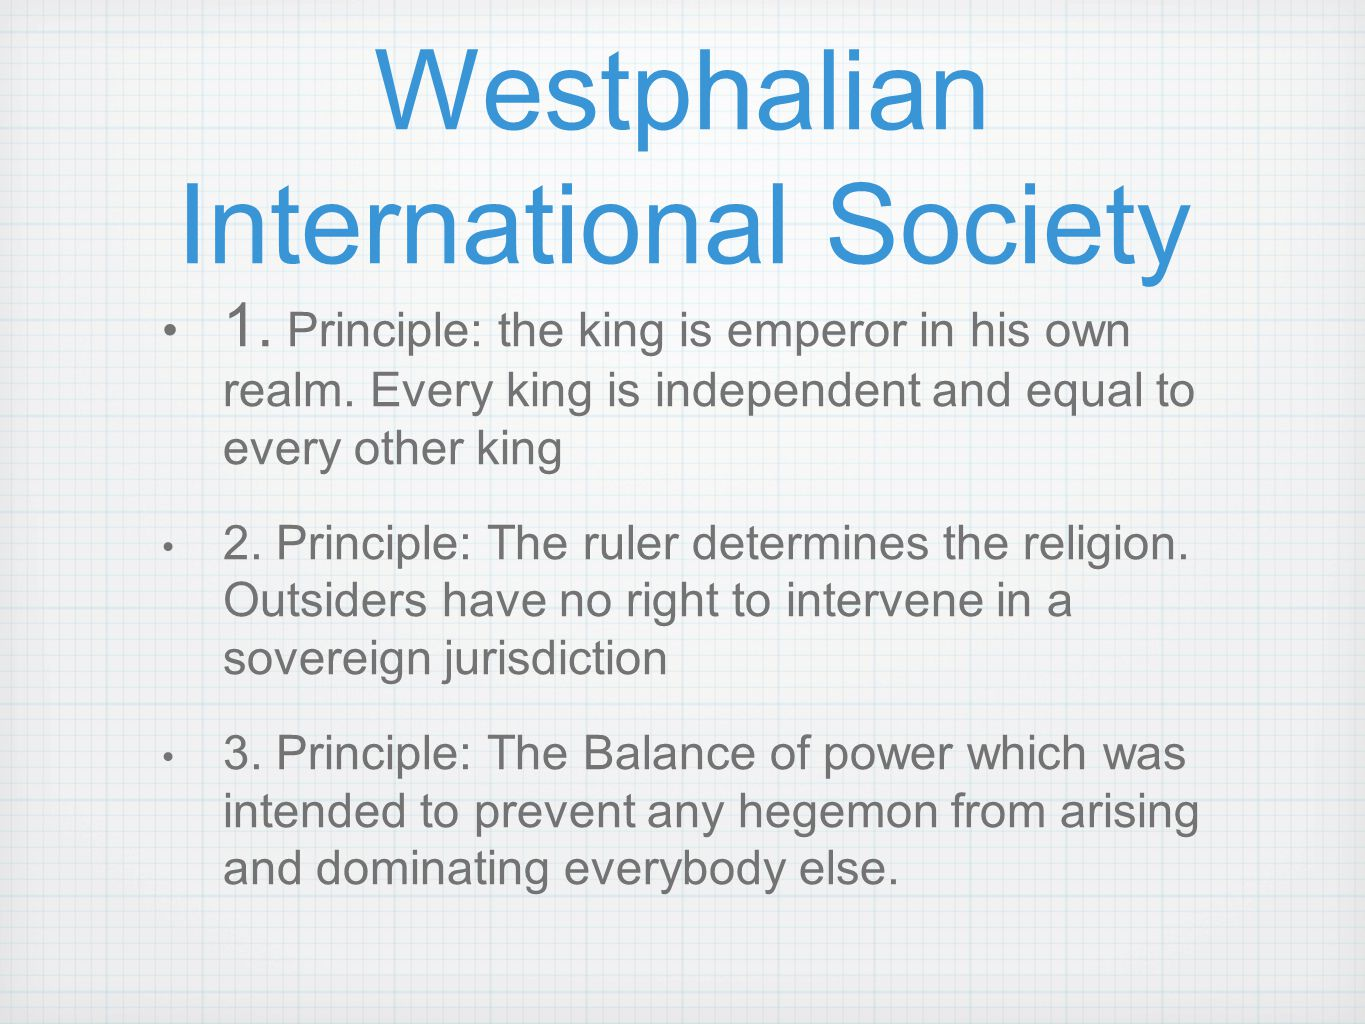 Westphalian International Society